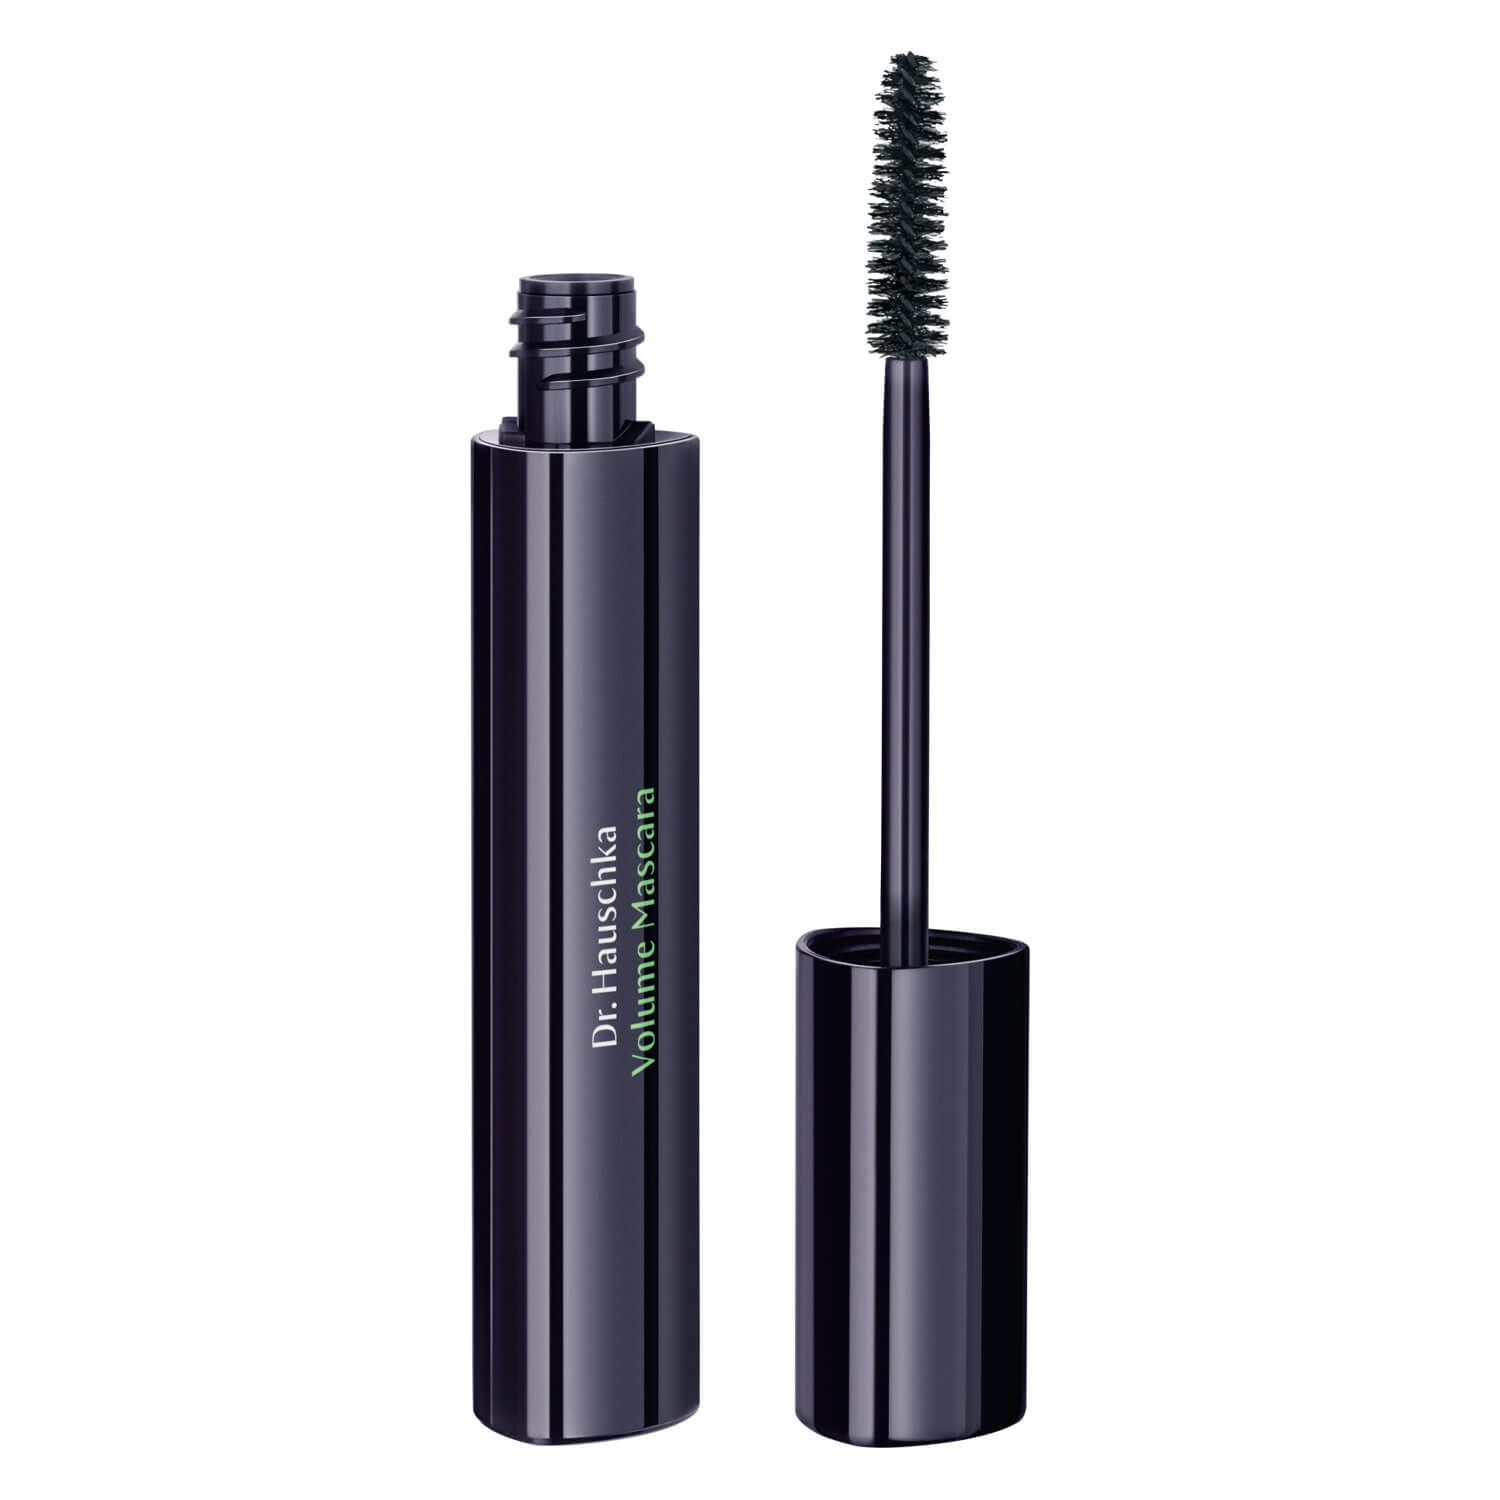 Dr. Hauschka Eyes - Volume Mascara black 01